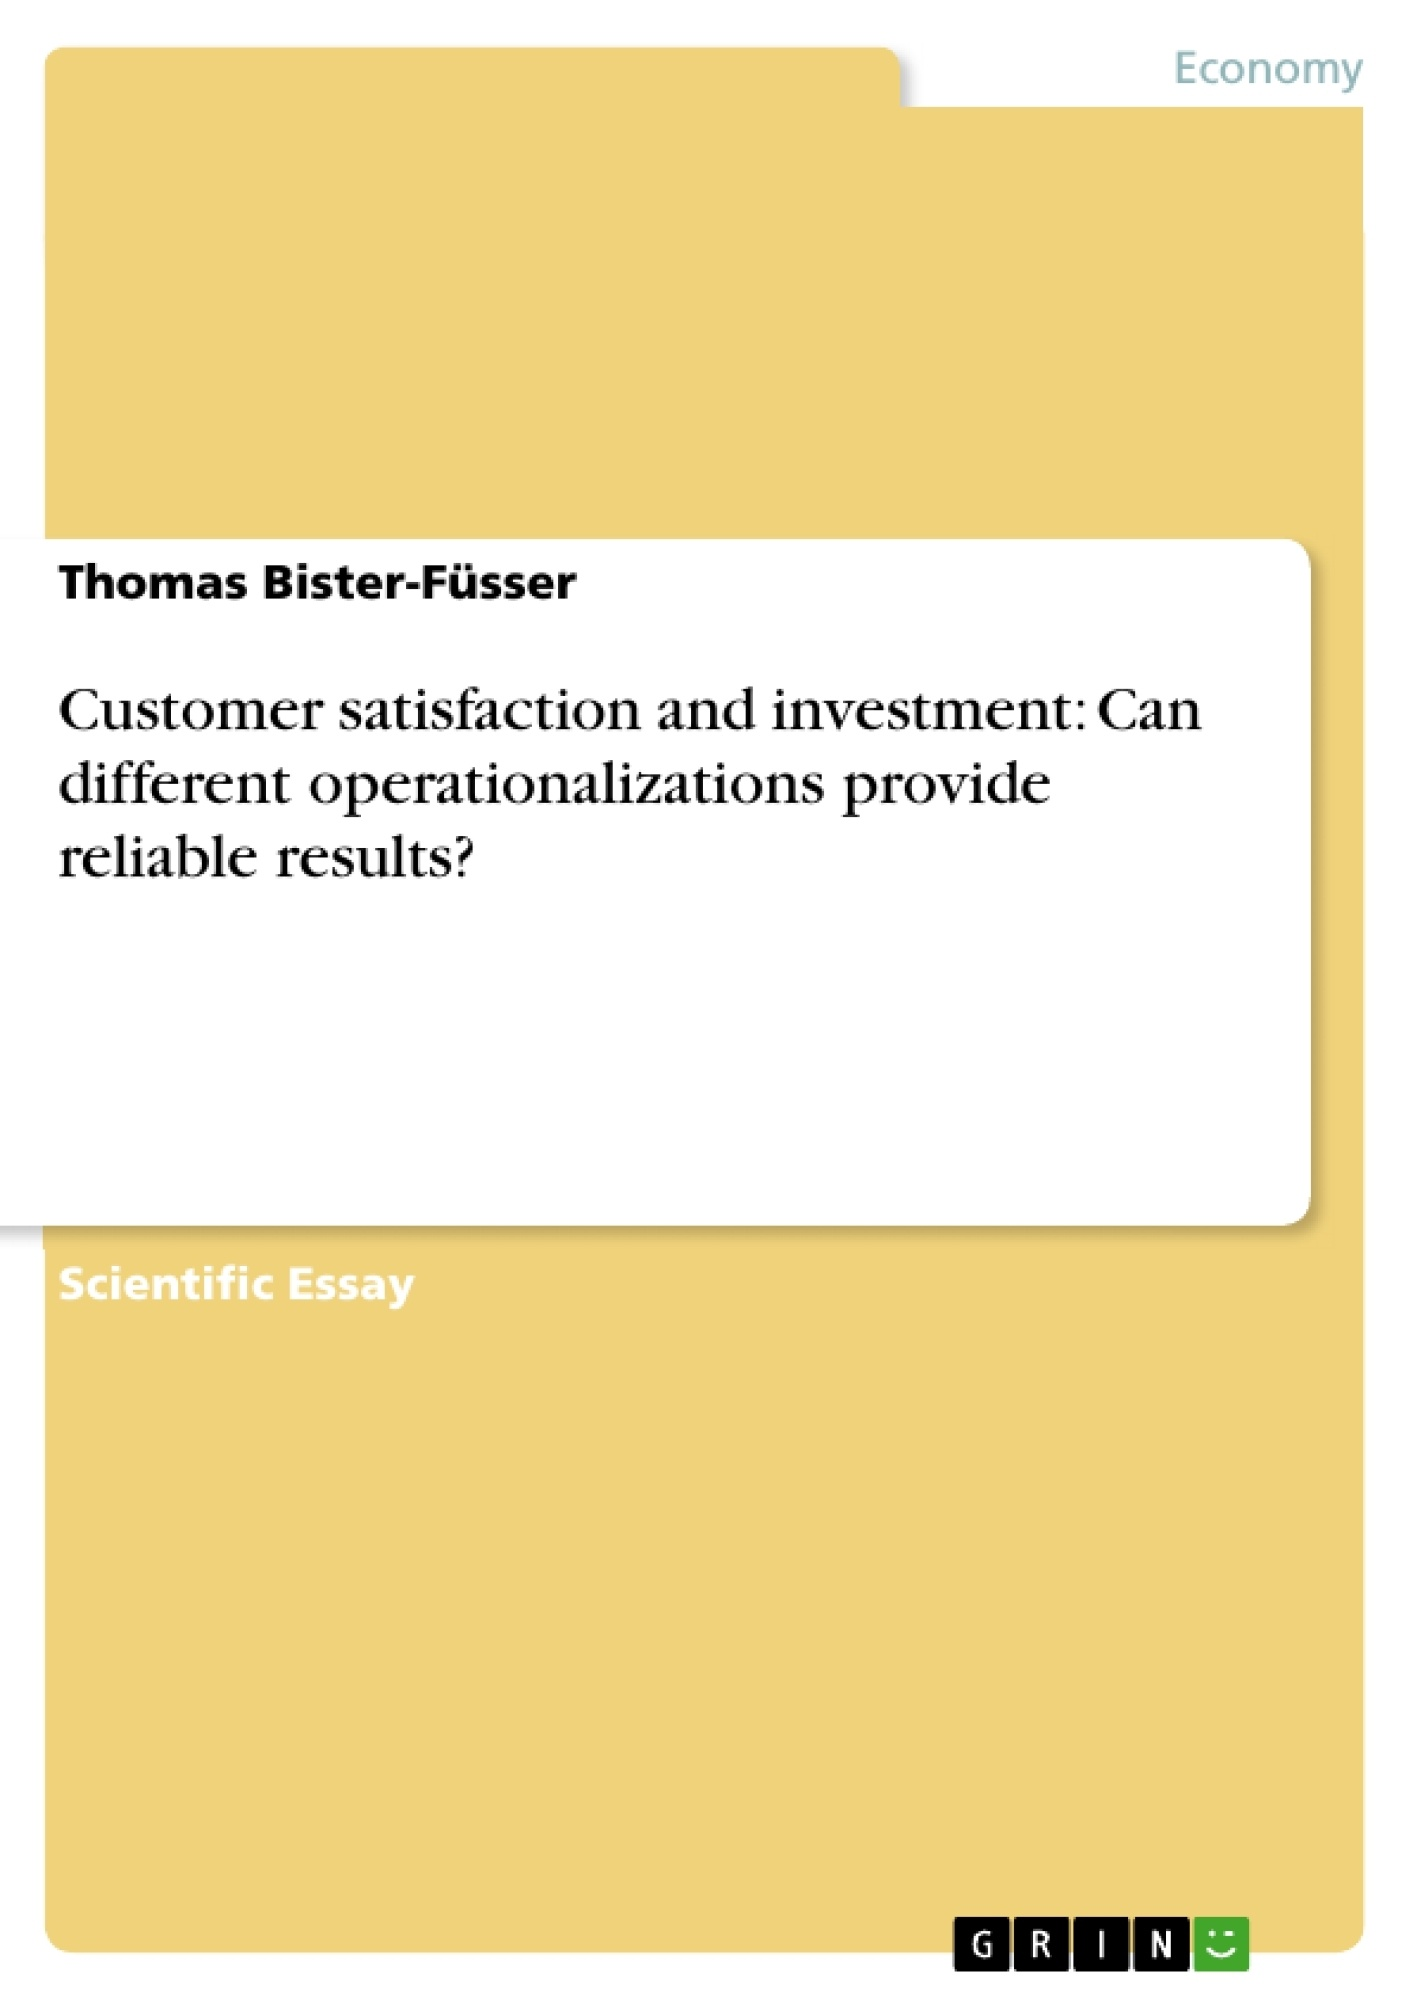 Title: Customer satisfaction and investment: Can different operationalizations provide reliable results?